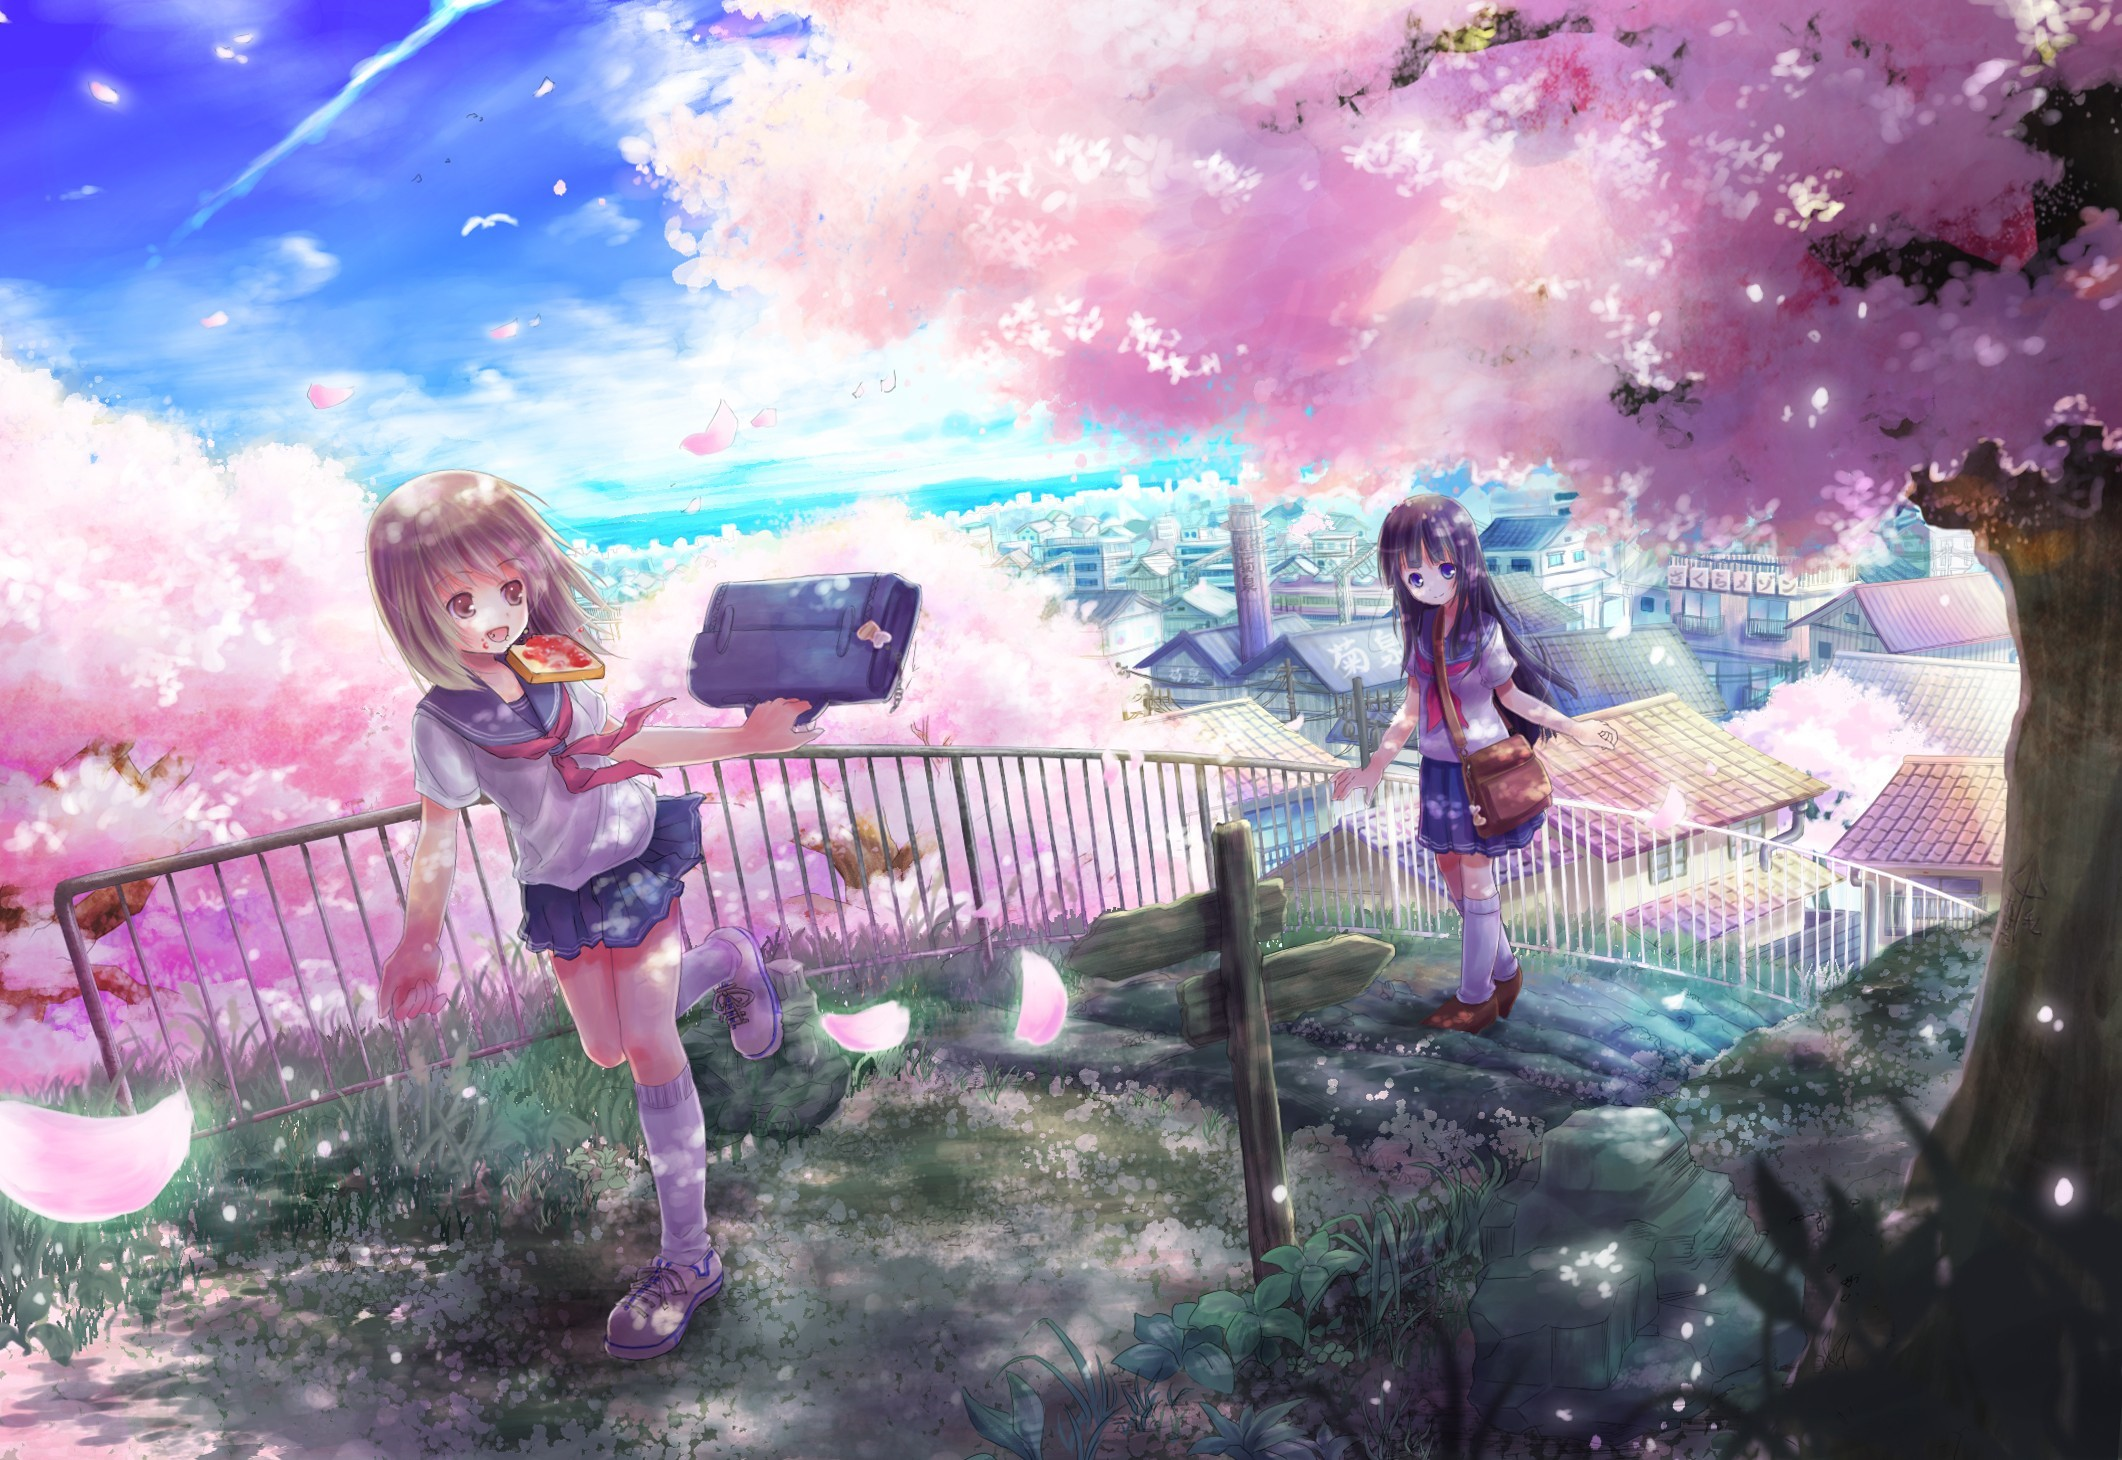 2122x1460 Anime Girls Bags Black Hair Bread Brown Eyes Brunettes Cherry Blossoms  Cityscapes Flowers Long School Uniforms Short Socks